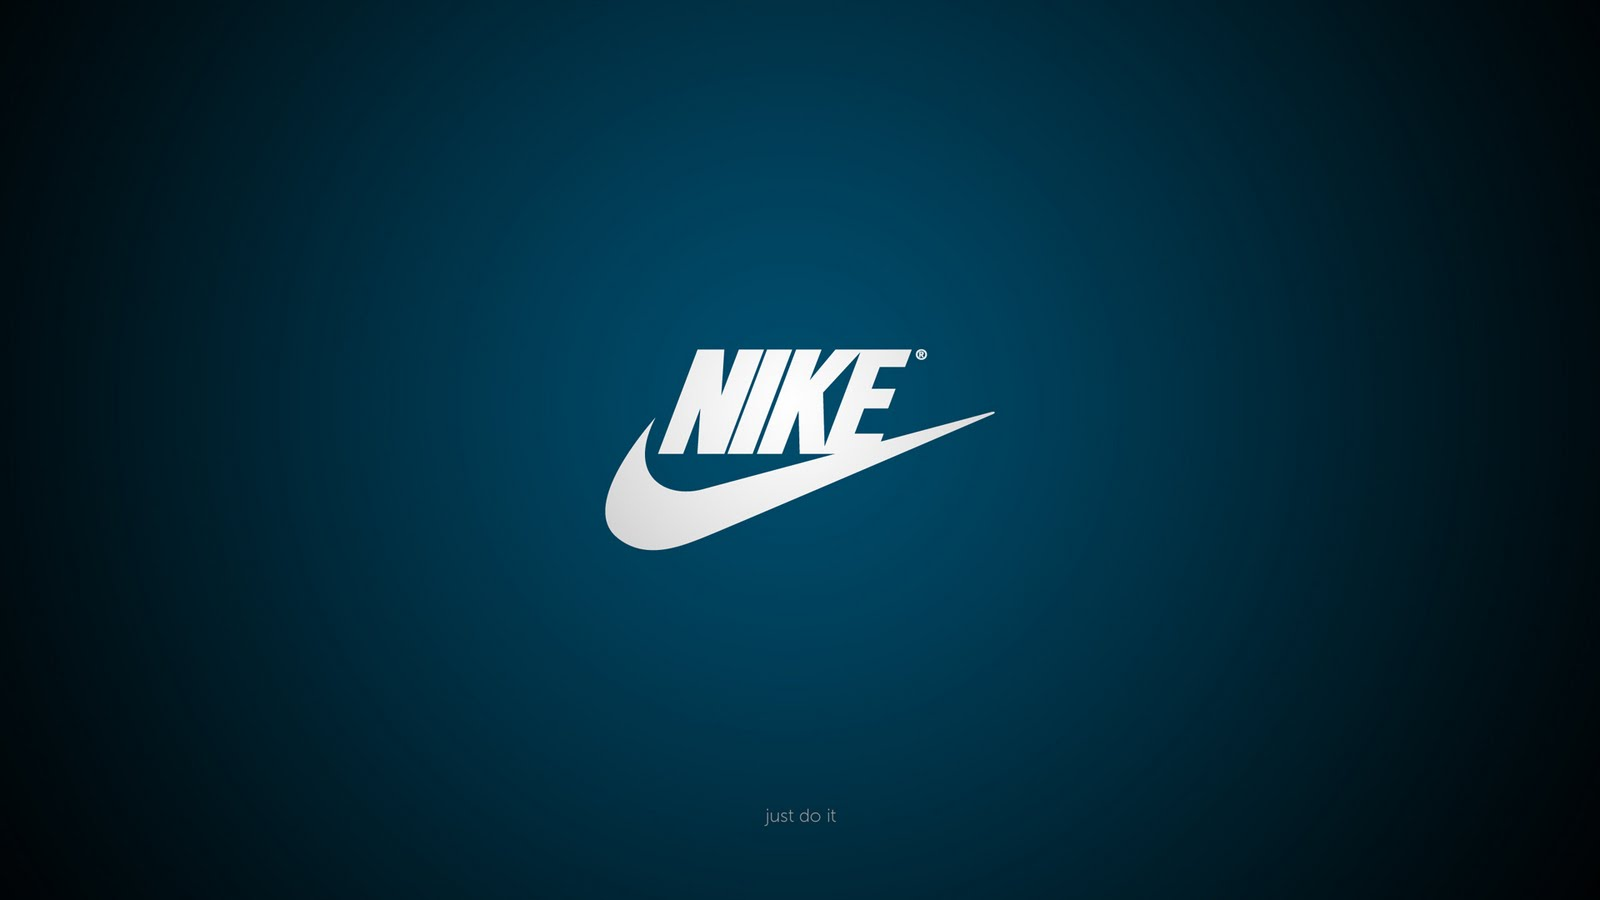 s1600BlueBackgroundNikeLogoJustdoitHDWallpaperjpg 1600x900